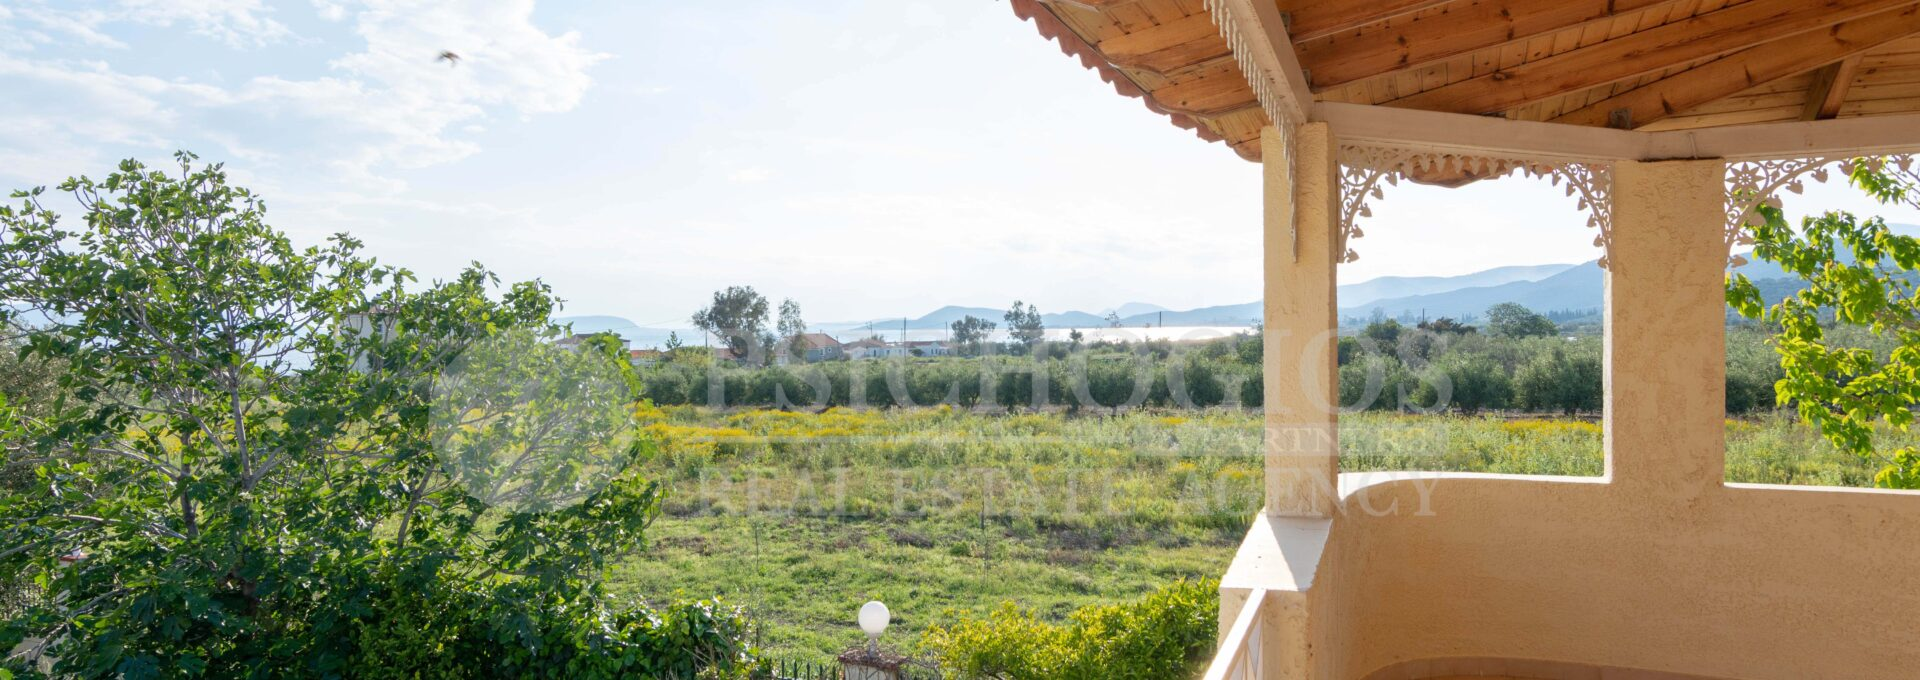 for_sale_house_380_square_meters_sea_view_ermioni_greece (25)